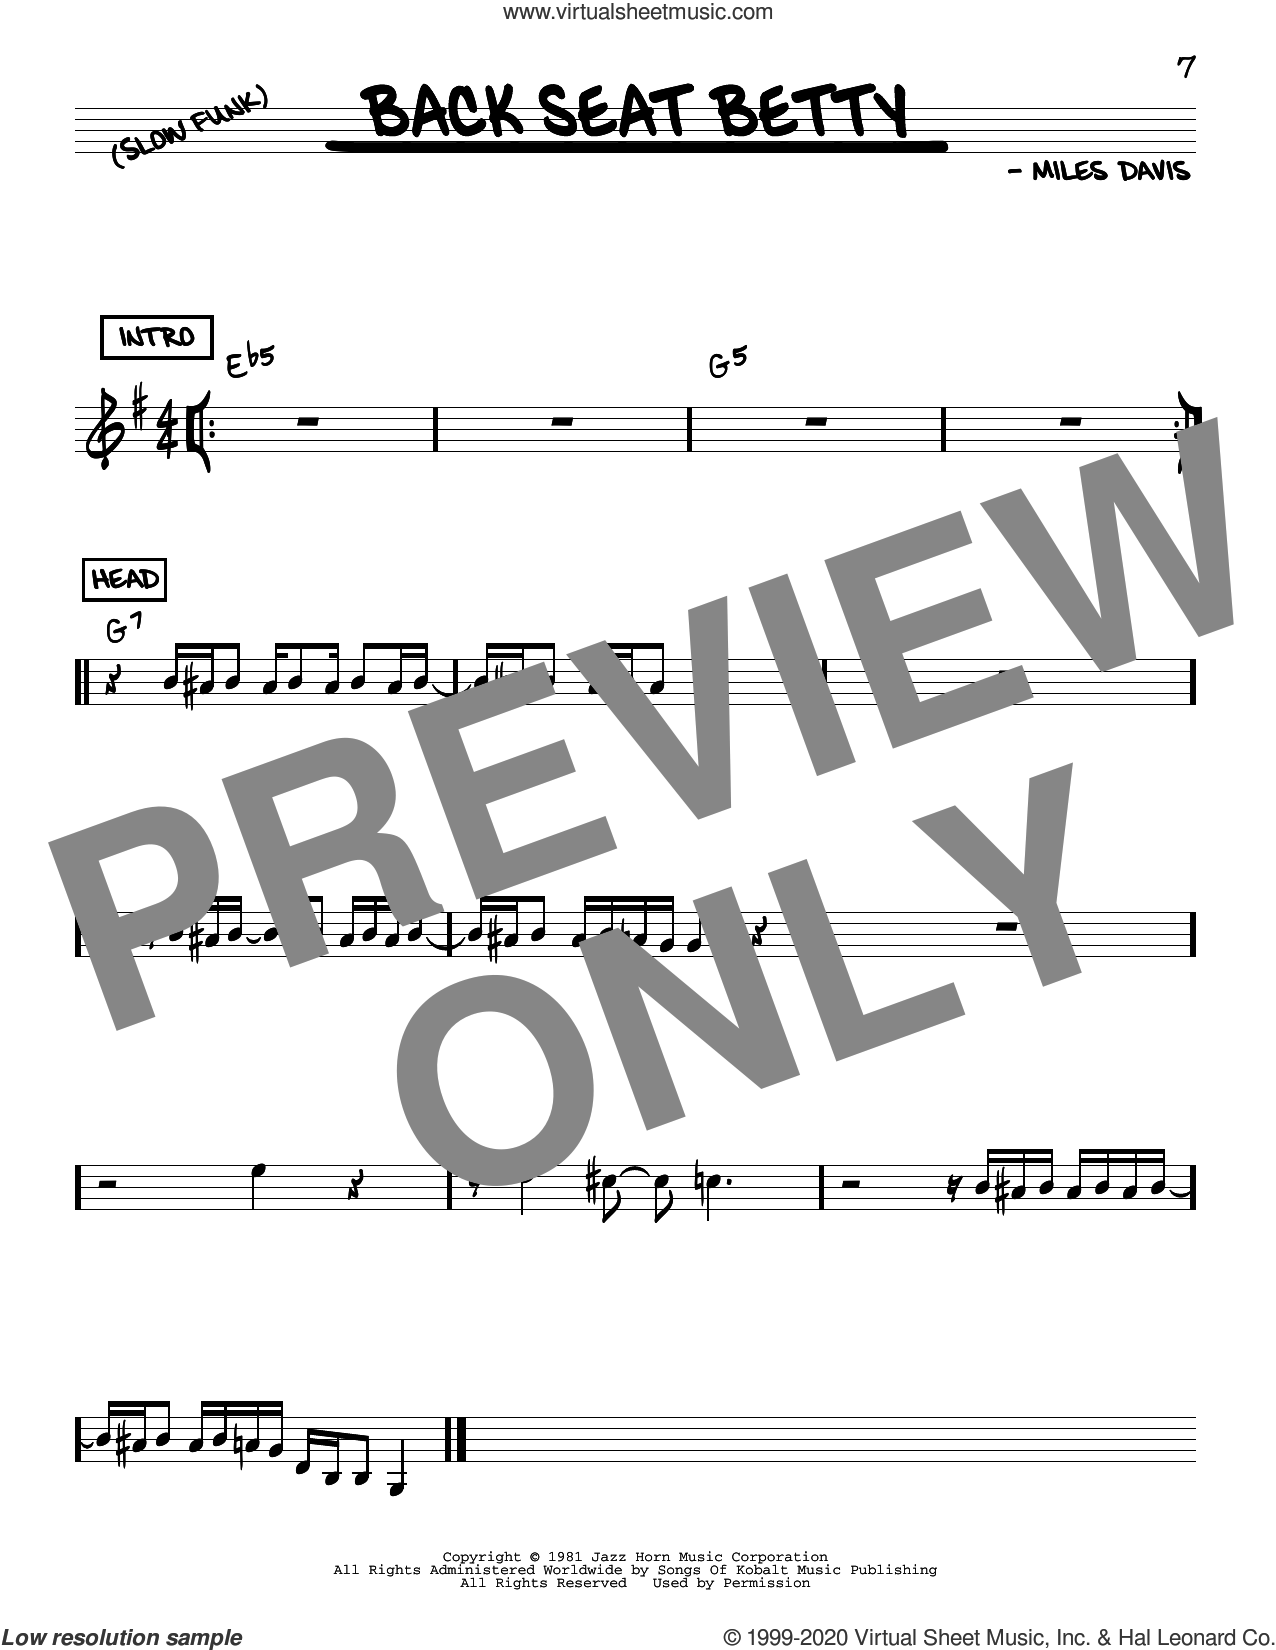 Back Seat Betty sheet music for voice and other instruments (real book) by Miles Davis, intermediate skill level